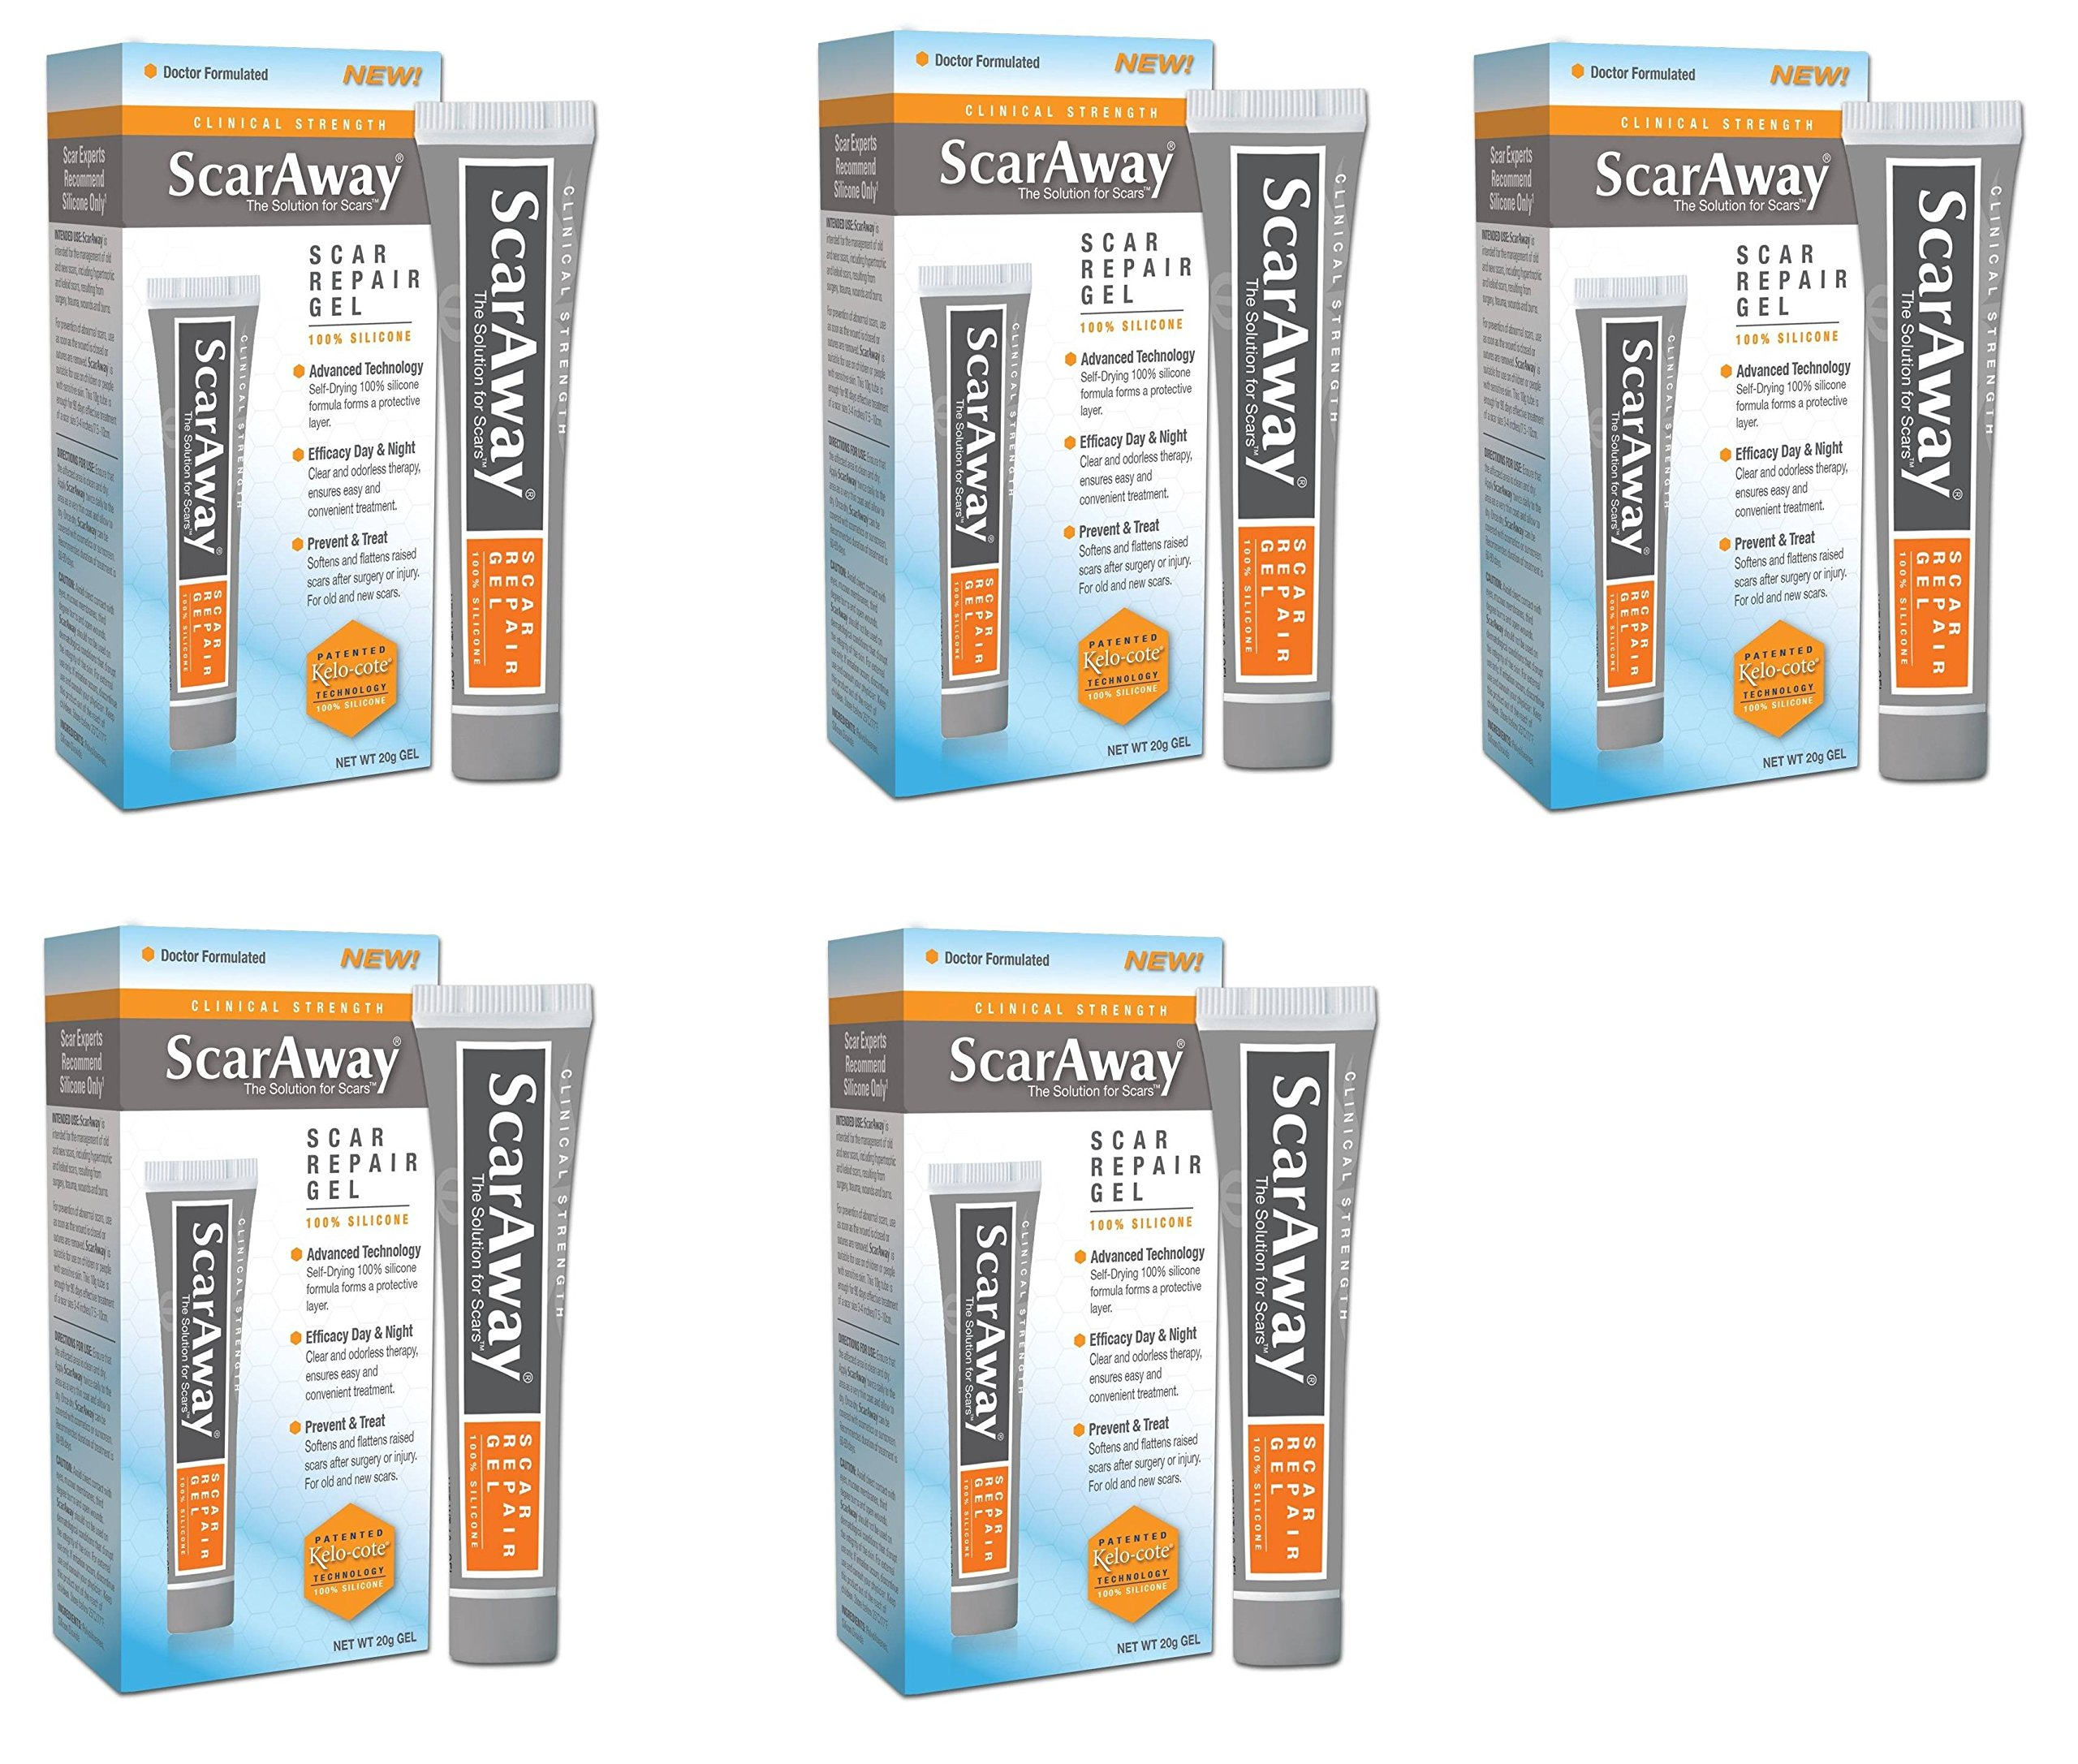 ScarAway 100% Silicone Self Drying Scar Repair Gel with Patented Kelo-cote Technology inFics, 20 grams, Pack of 5 by ScarAway